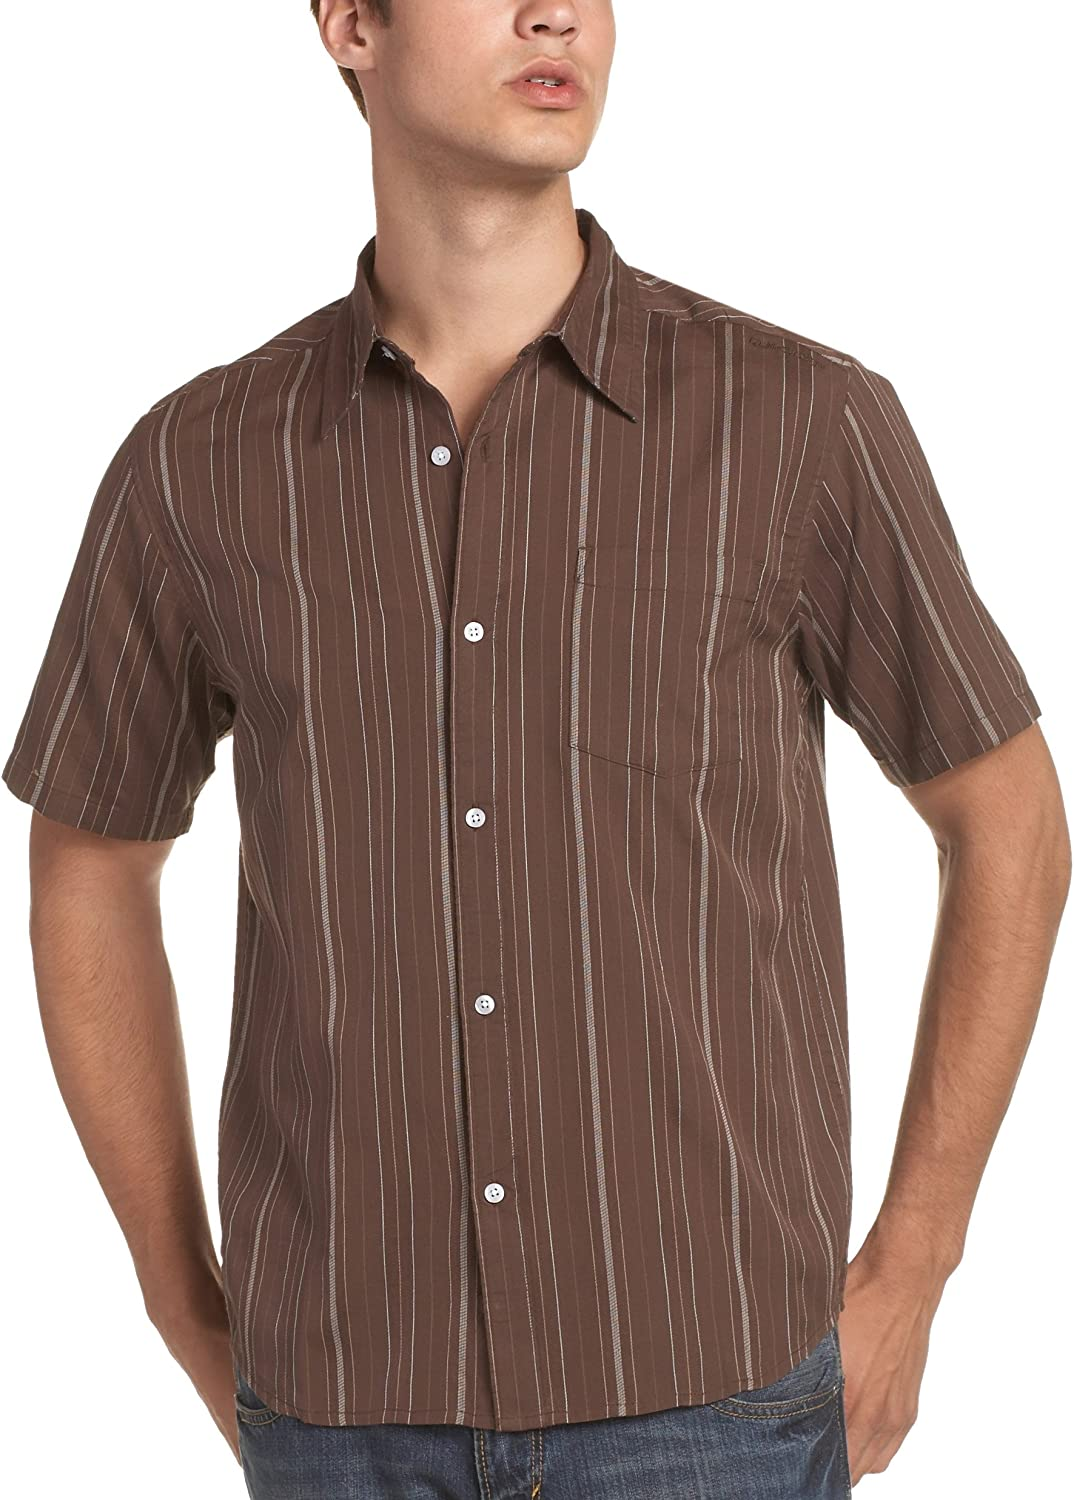 Don't miss the Raleigh Mall campaign Quiksilver Men's Medley Button Shirt Down Woven